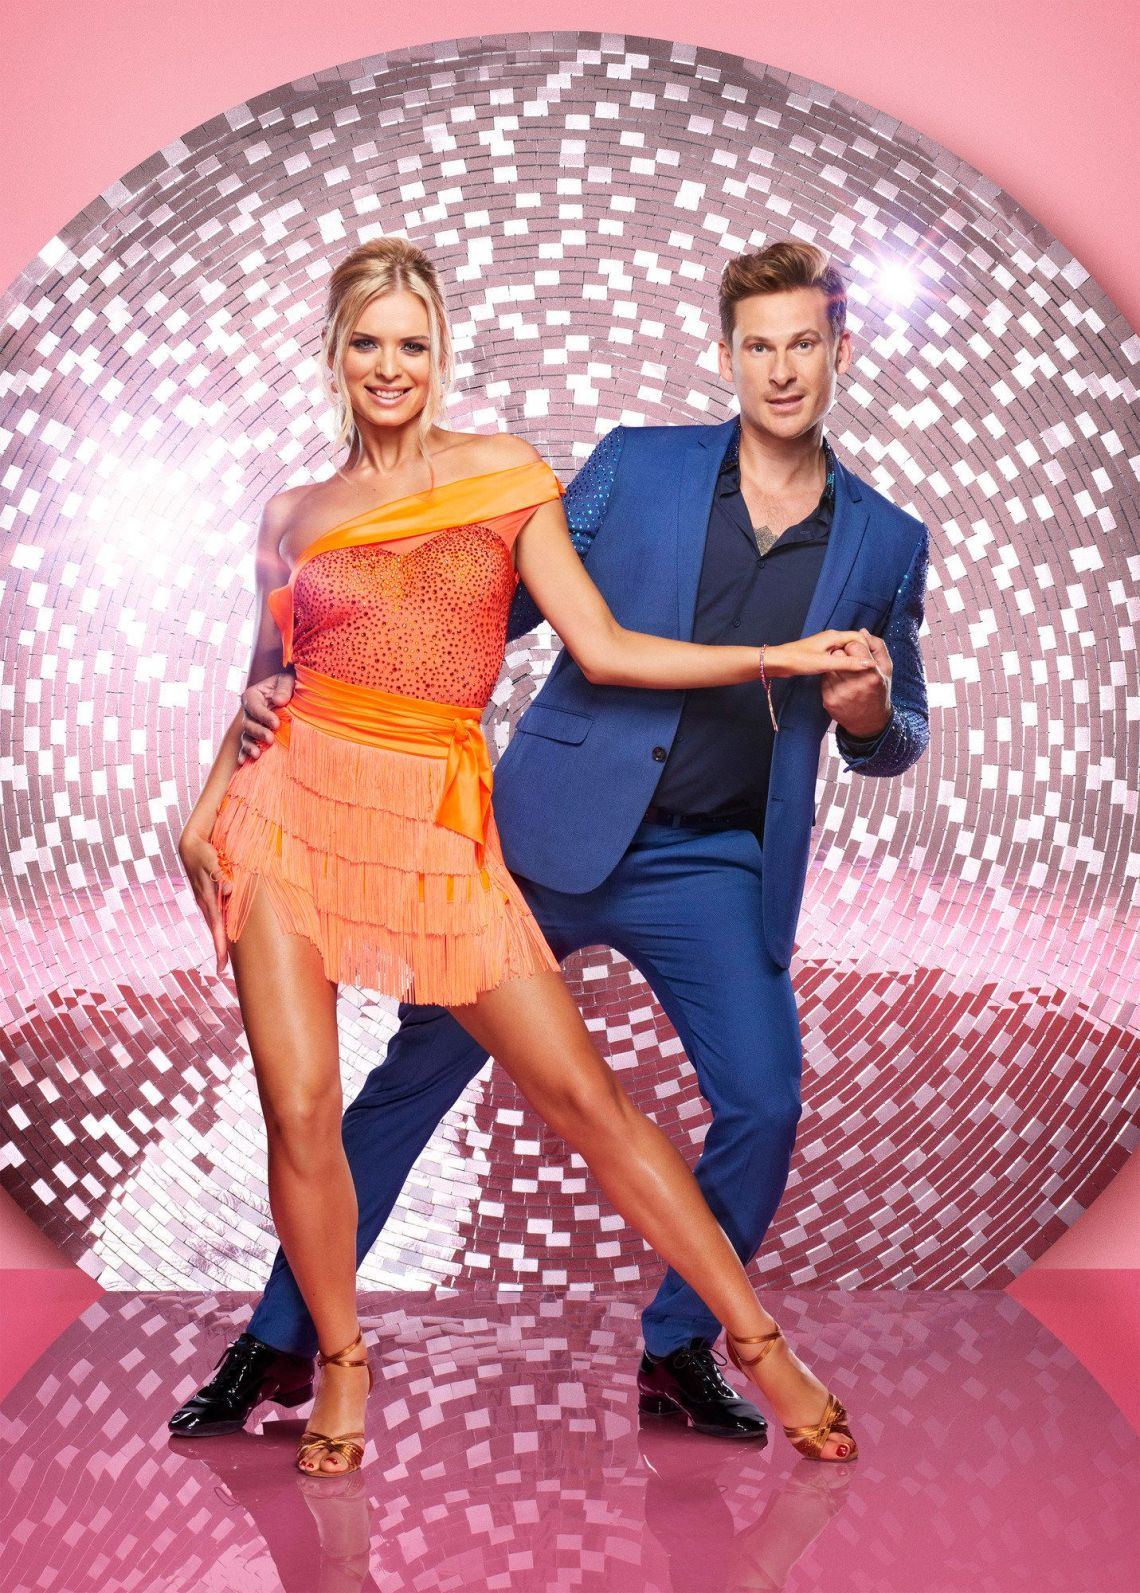 'Strictly' Star Lee Ryan Has Some Fighting Talk After Landing In The Dance Off